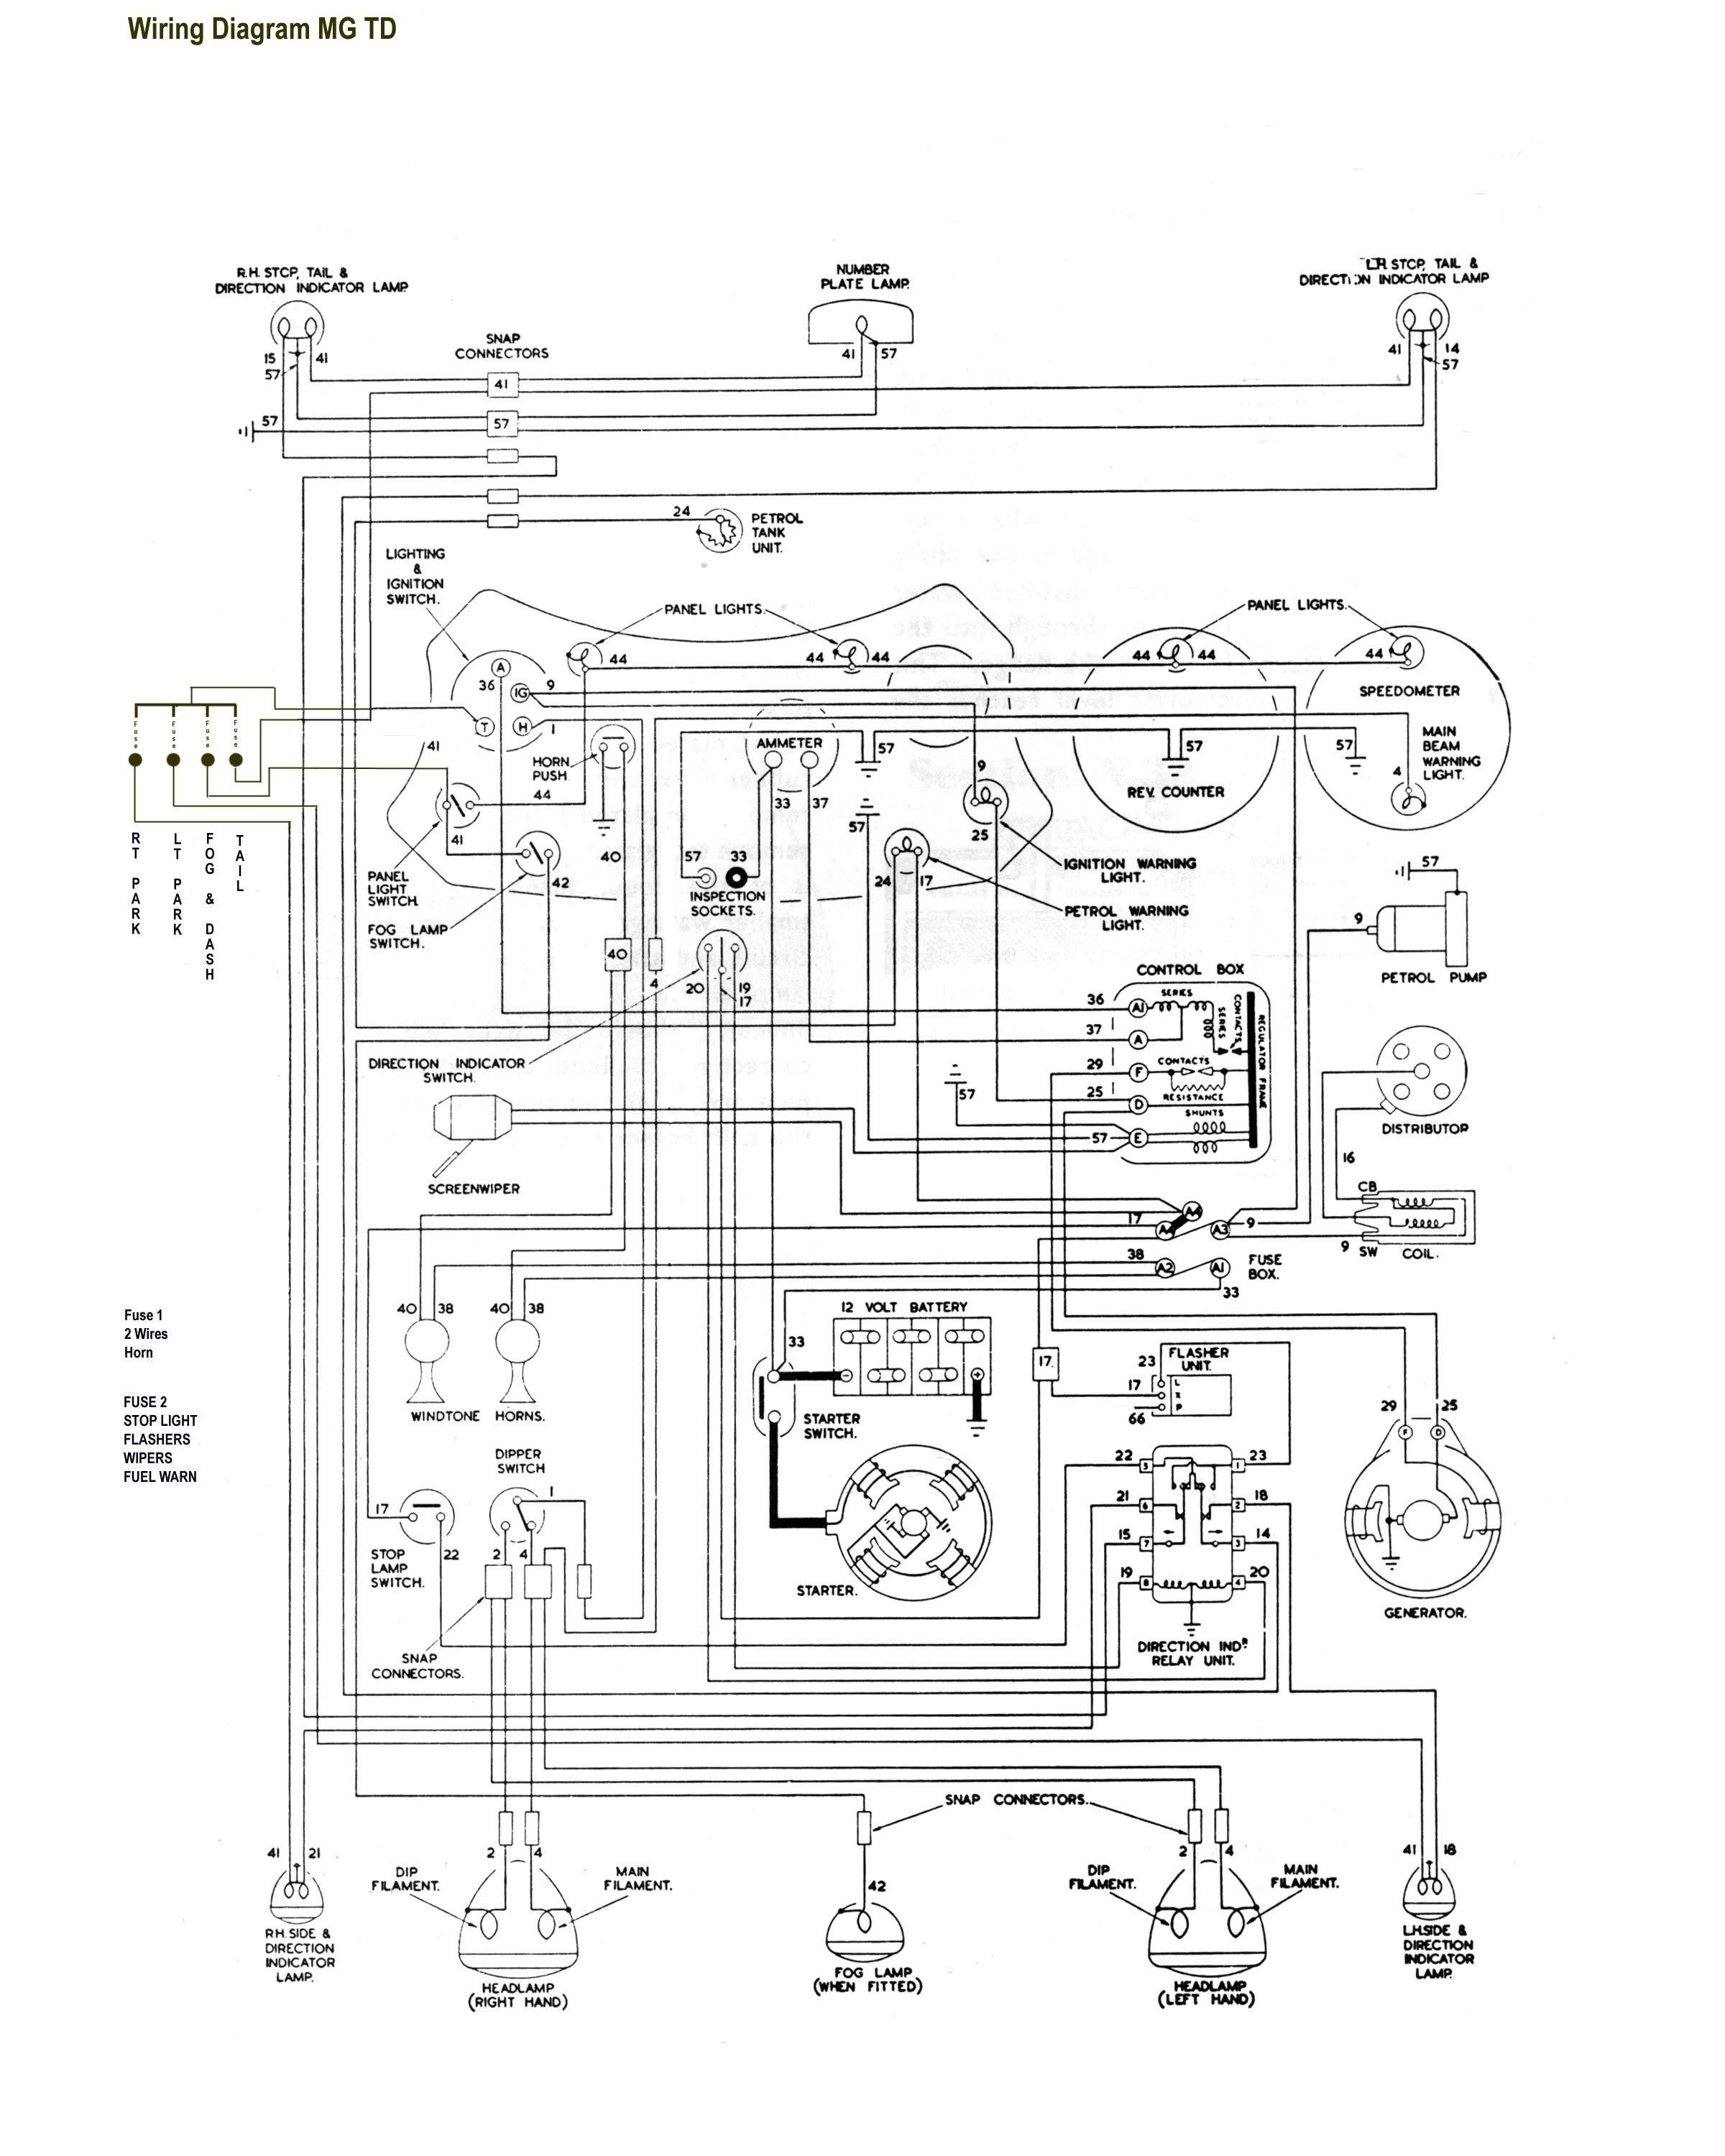 MerzWiring mg tf wiring diagram mg tc wiring diagram \u2022 free wiring diagrams  at bayanpartner.co